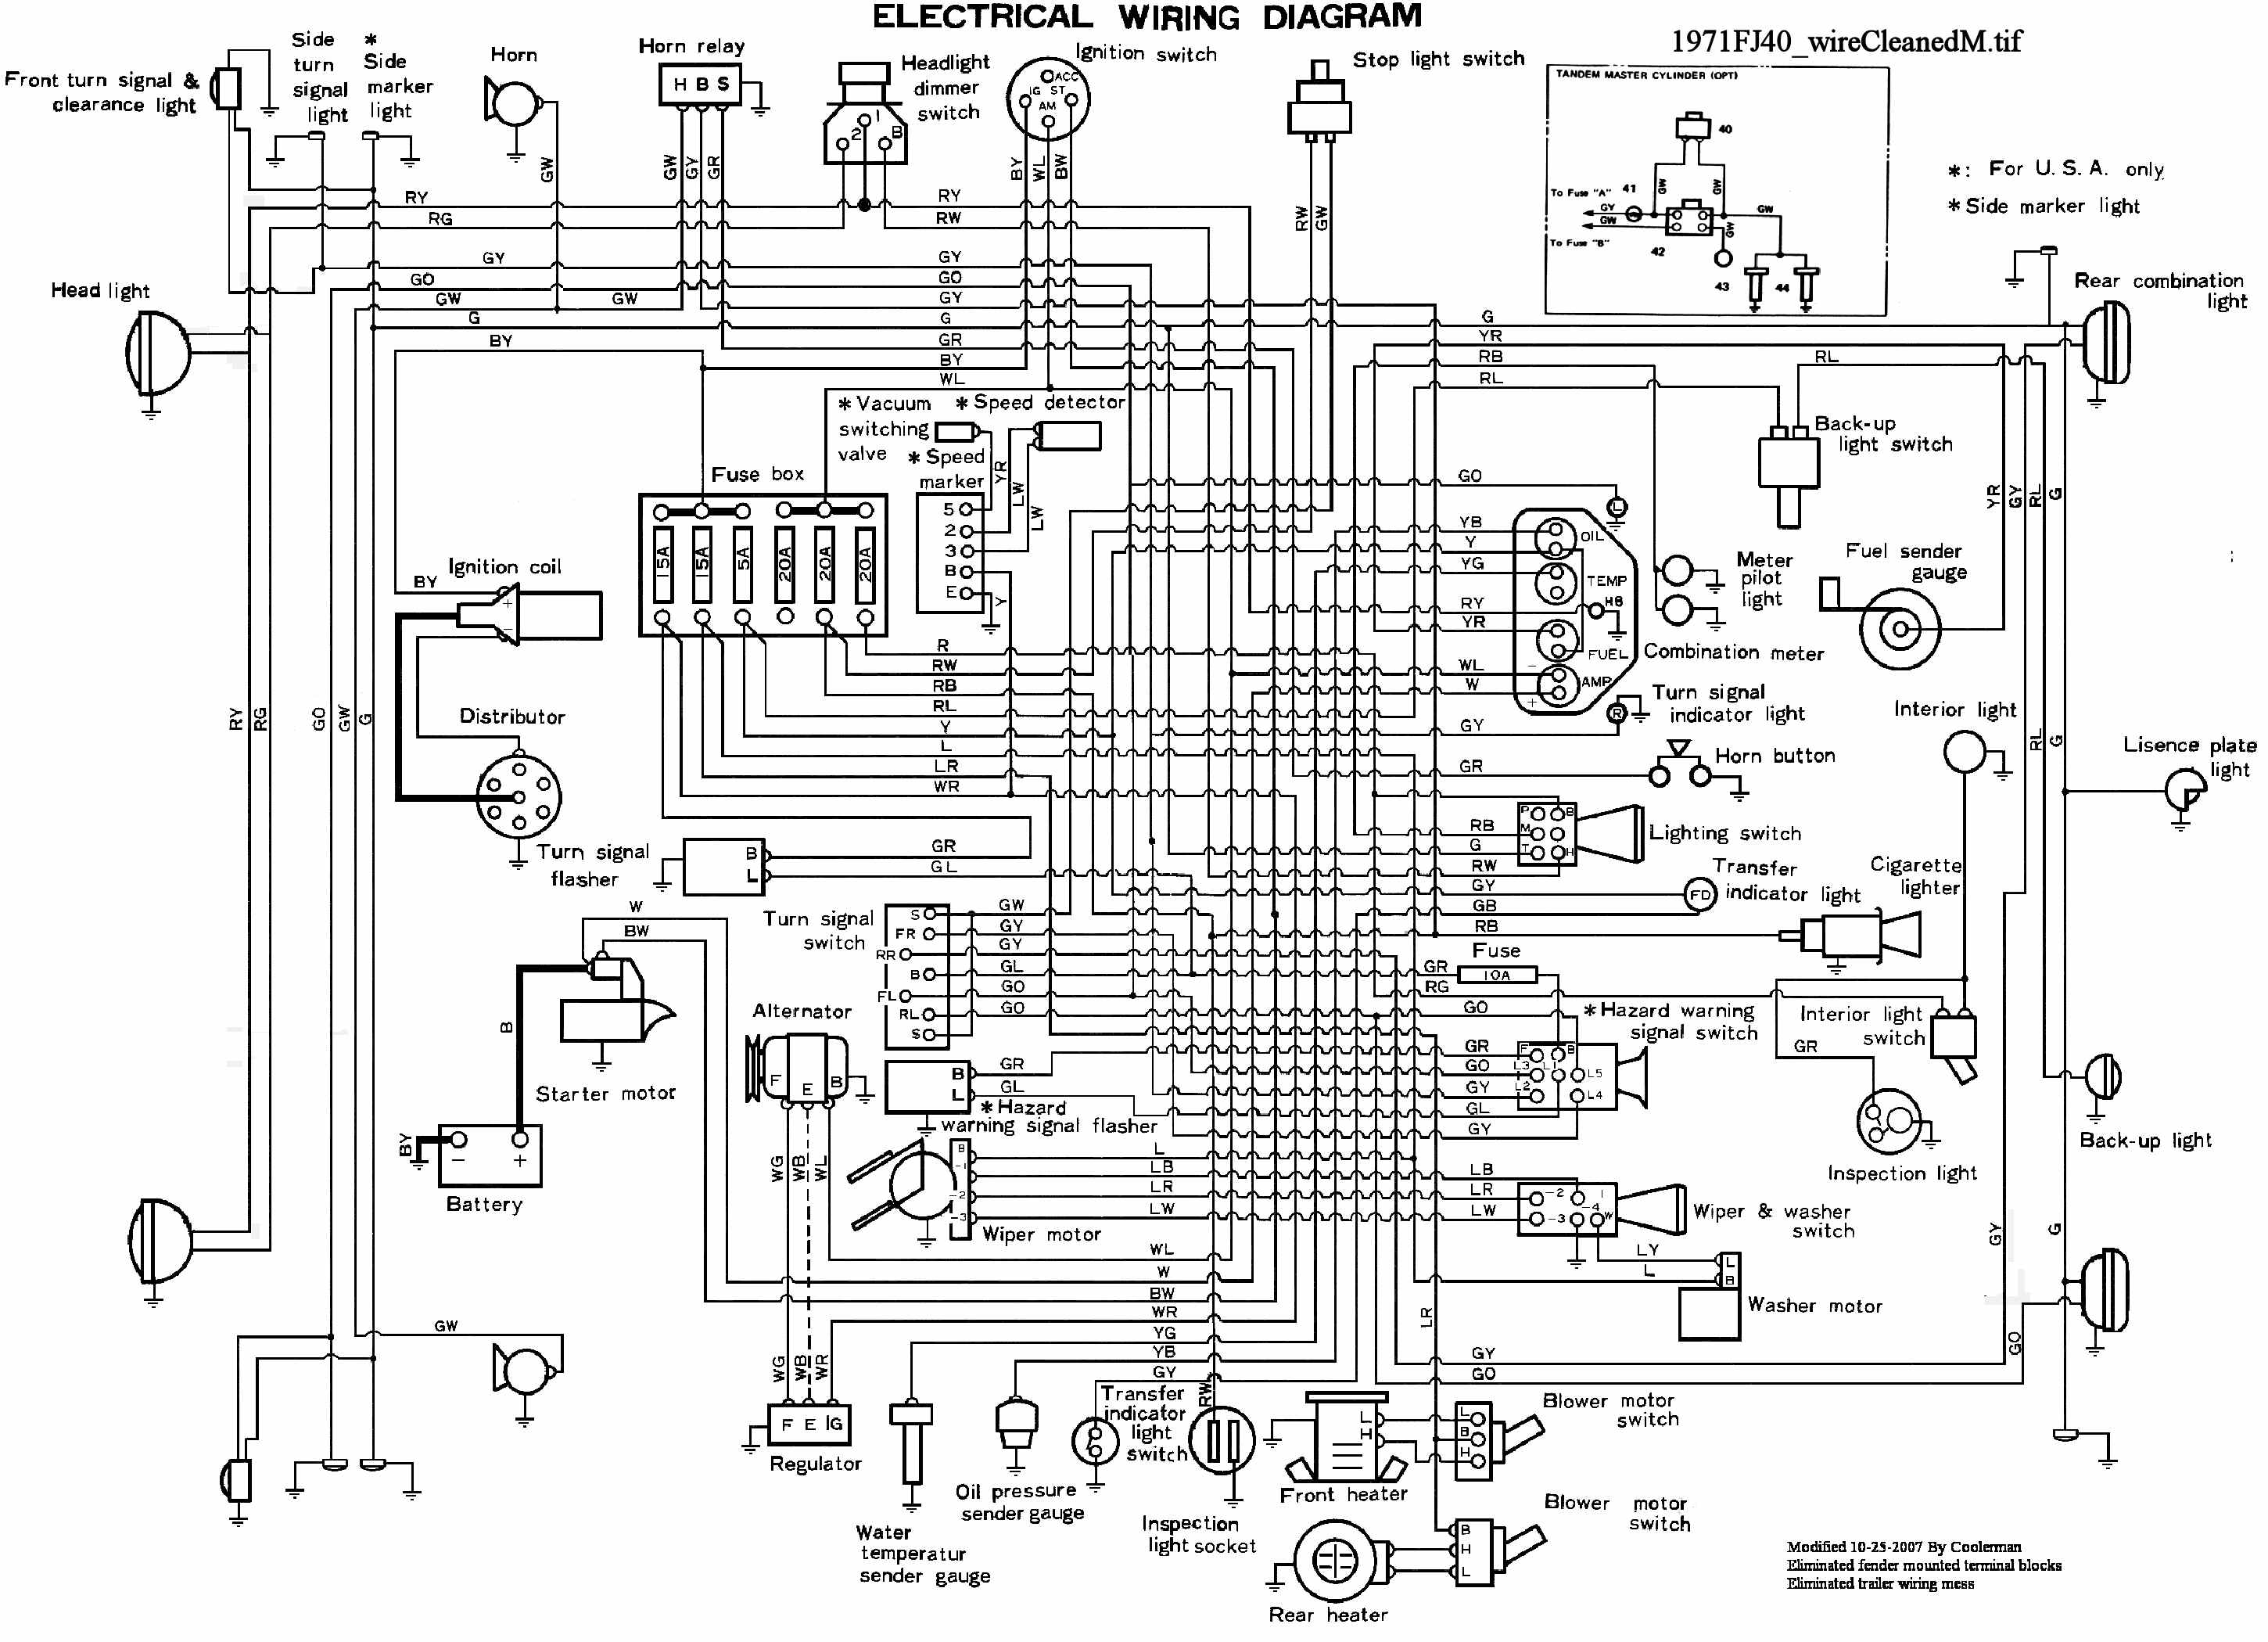 medium resolution of fj40 wiring diagram painless wiring diagrams 71fj40 wirecleanedm resize 665 2c481 centech wiring harness